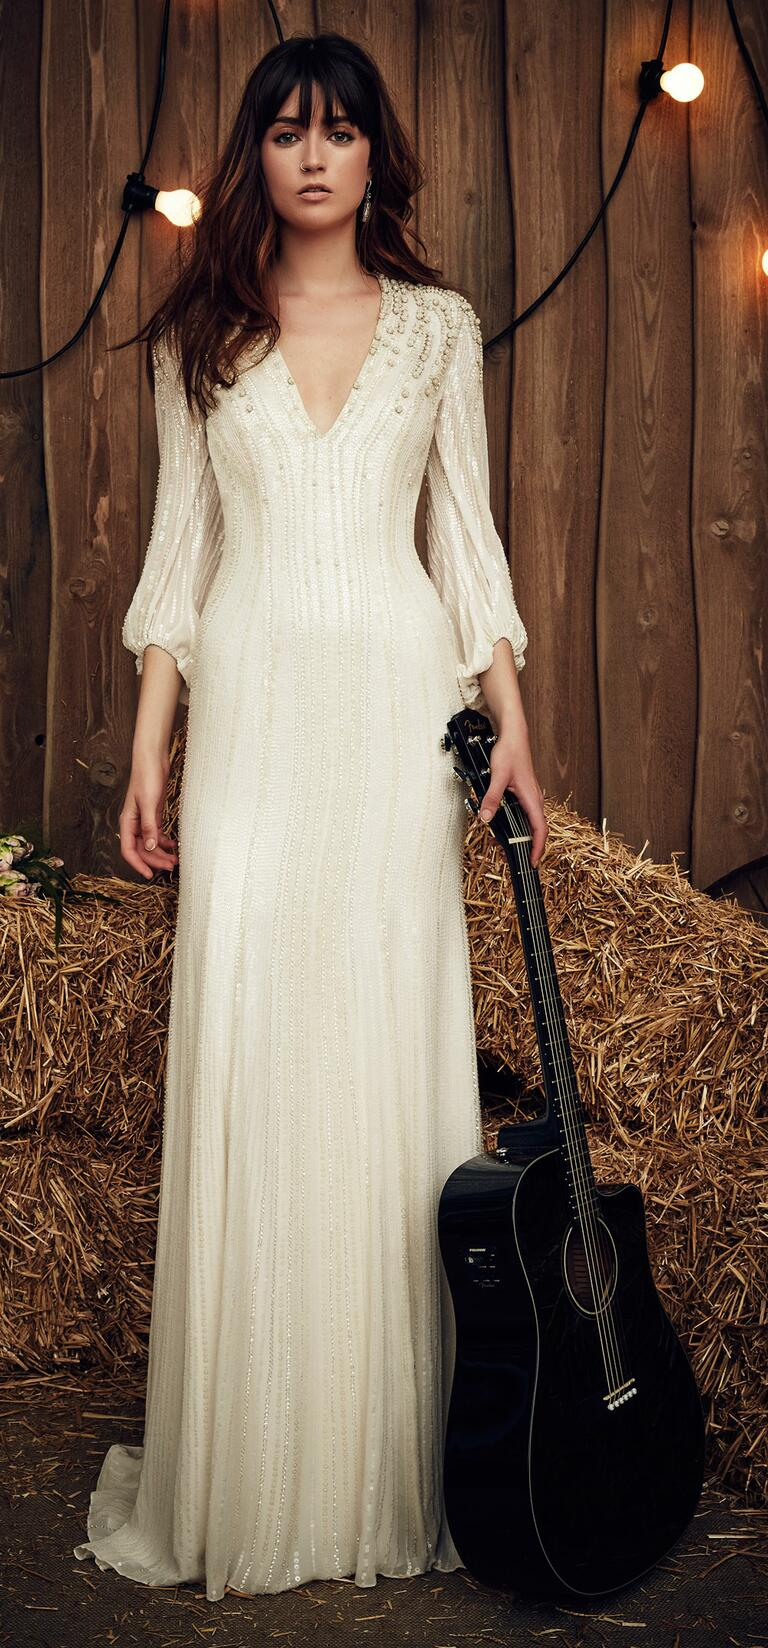 Jenny Packham Spring 2017 Lara wedding dress with three-quarter-length sleeves, plunging v-shaped neckline and gemstone and sequin accents for a hint of shimmer